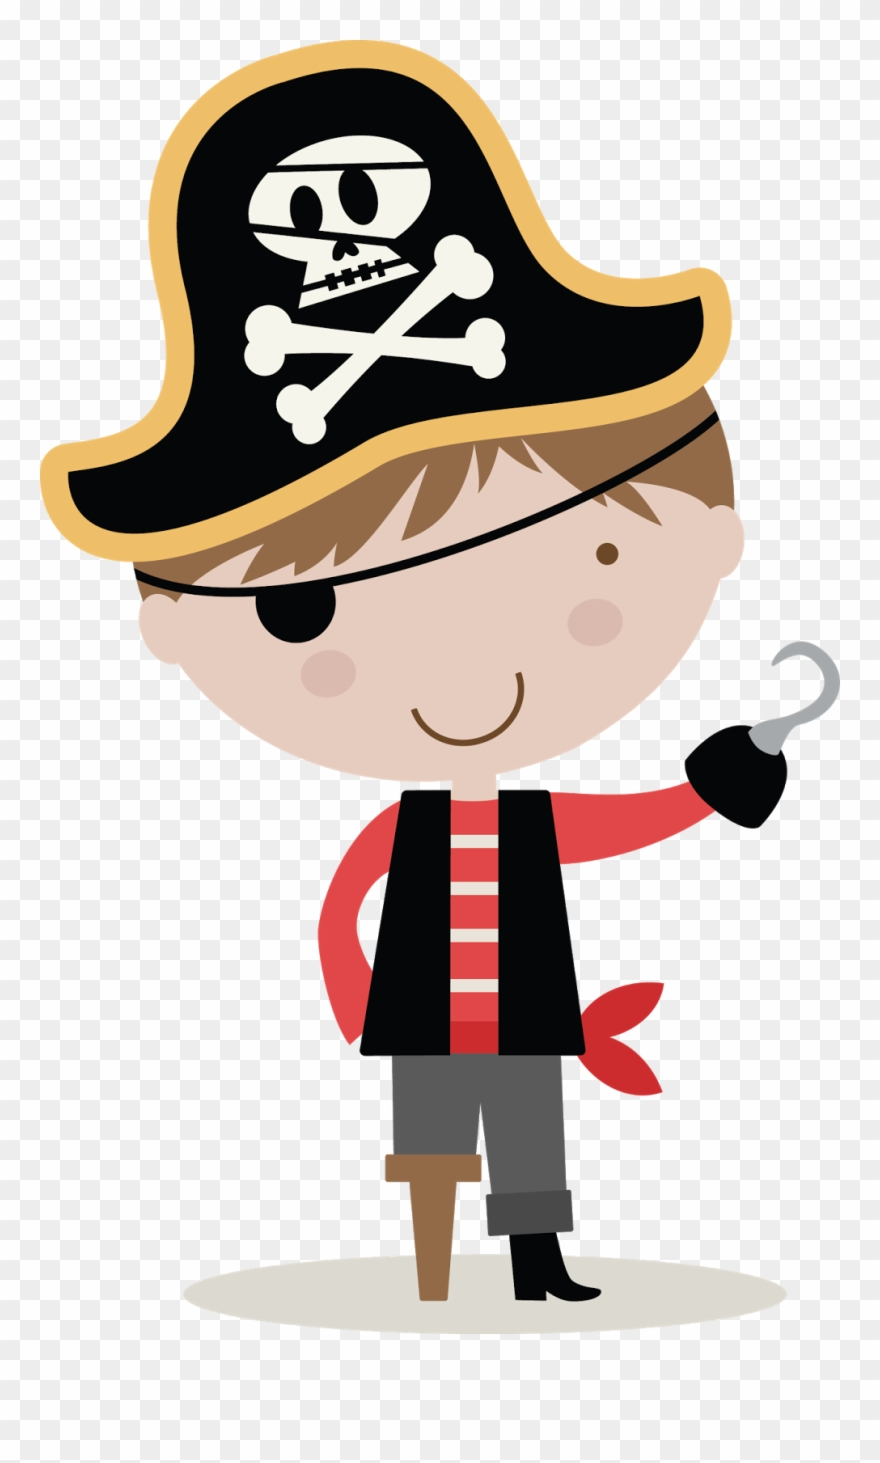 Pirate boy clipart graphic free download Security Kid Pirate Pictures Pirates Kids Clip - Pirate Clipart Png ... graphic free download